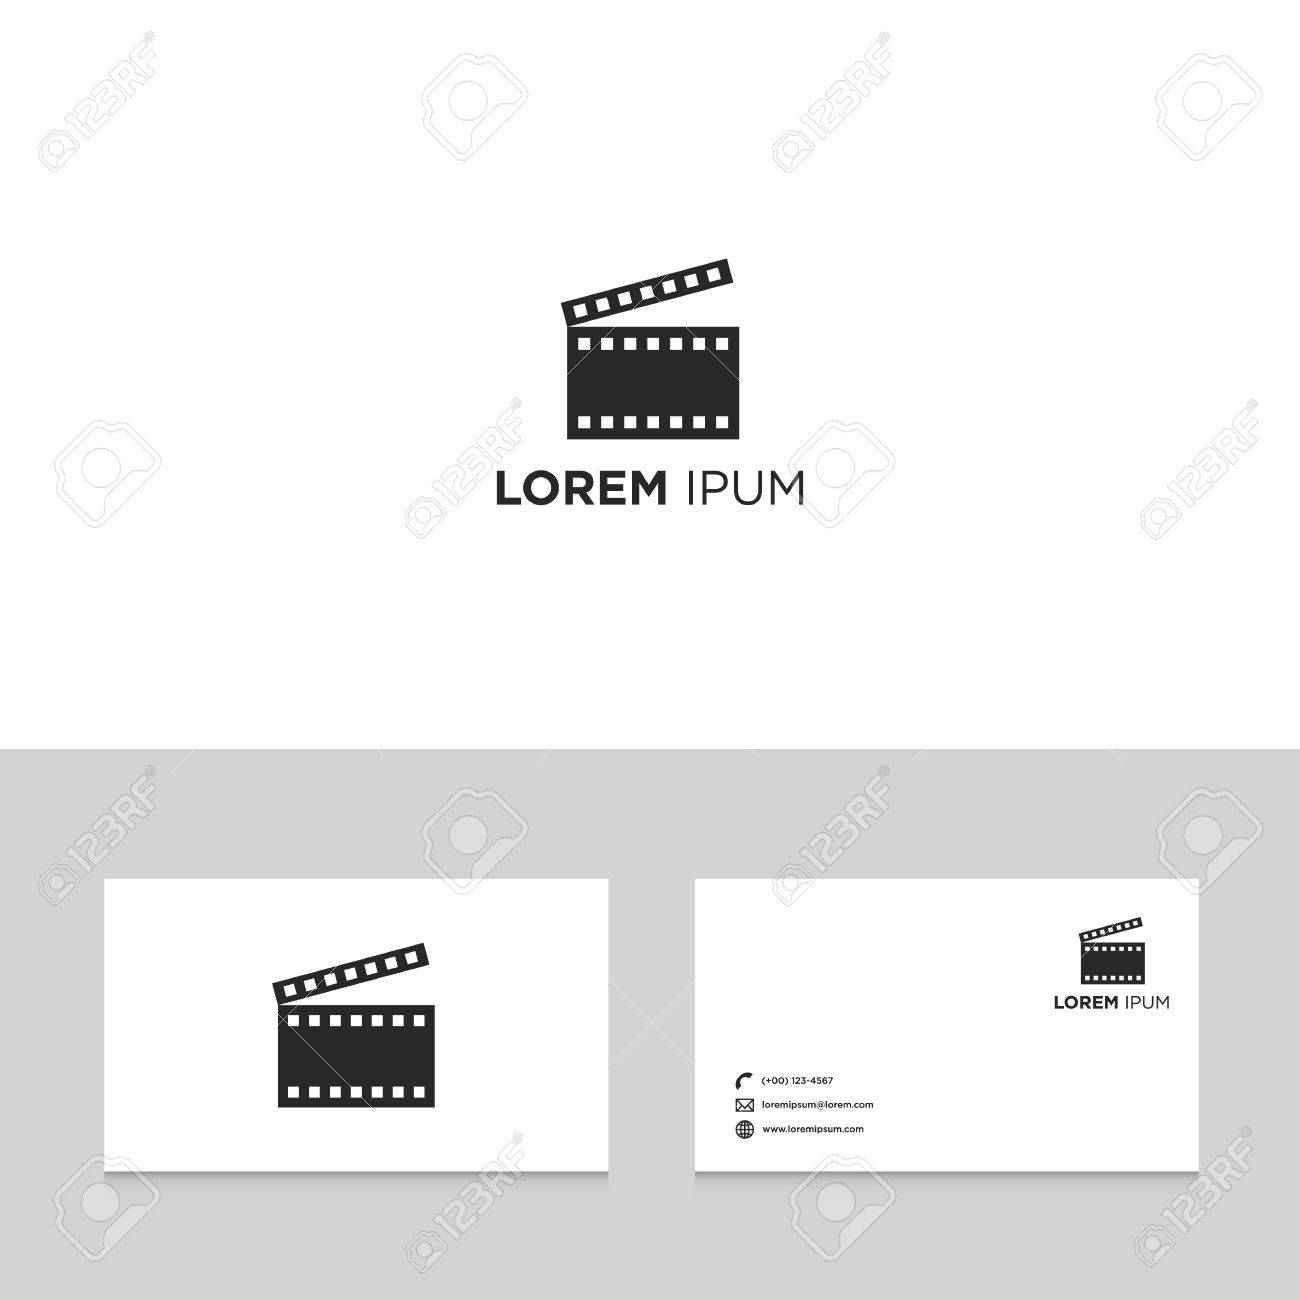 Logo Design Elements With Business Card Template, Film Movie ...